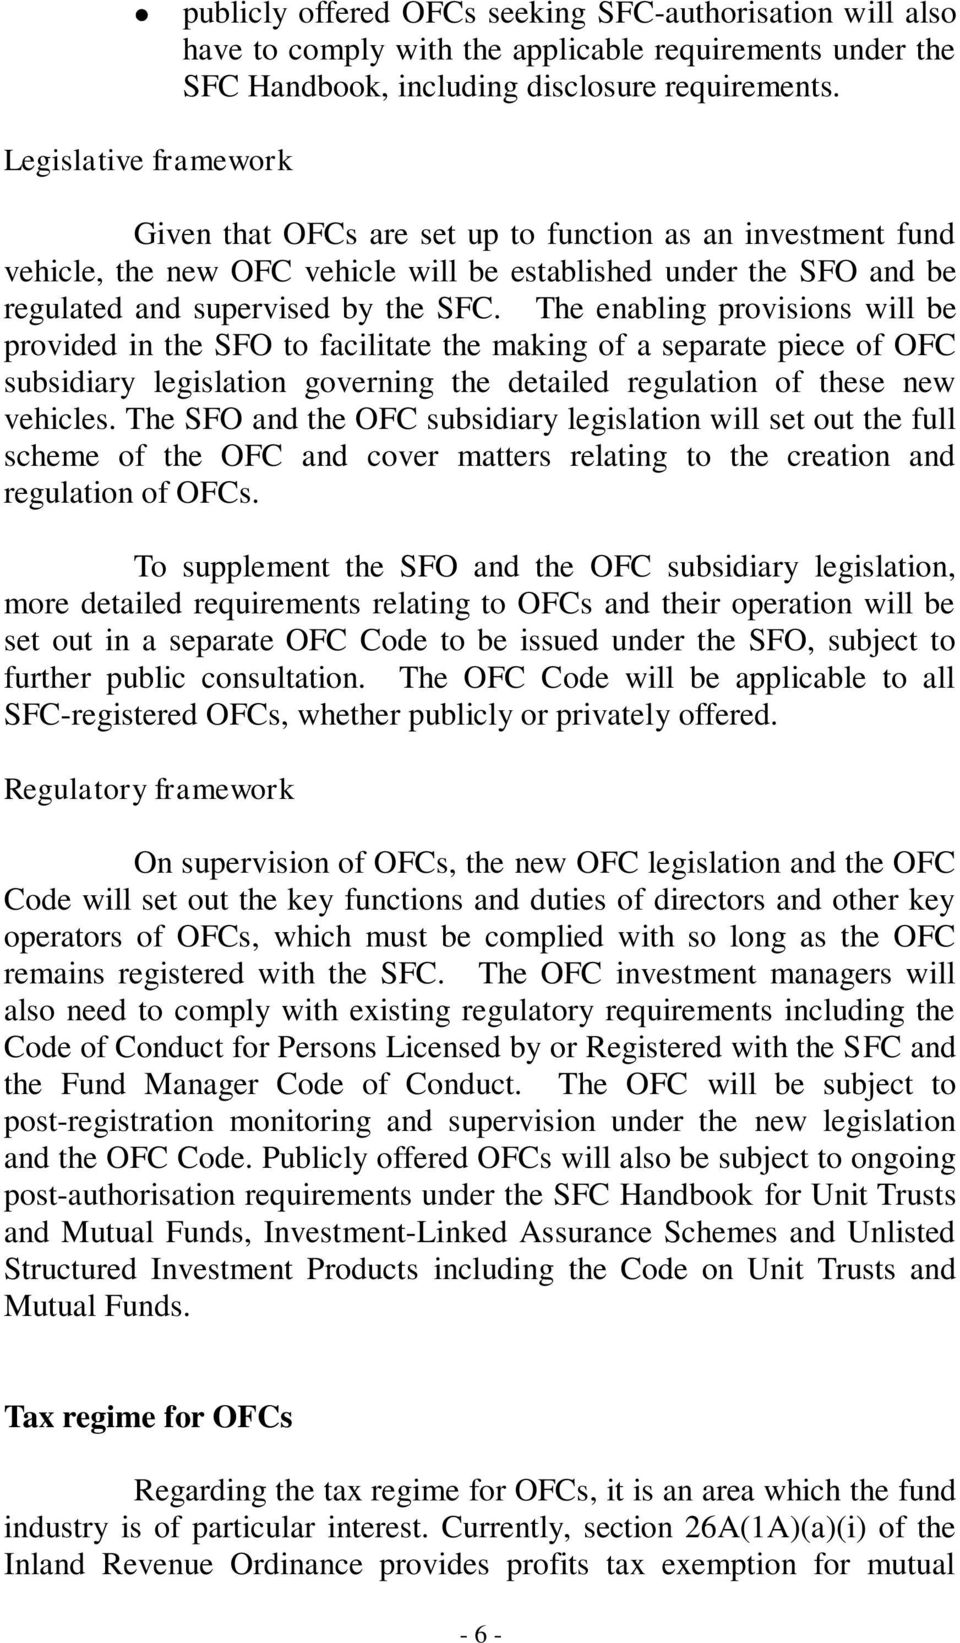 The enabling provisions will be provided in the SFO to facilitate the making of a separate piece of OFC subsidiary legislation governing the detailed regulation of these new vehicles.